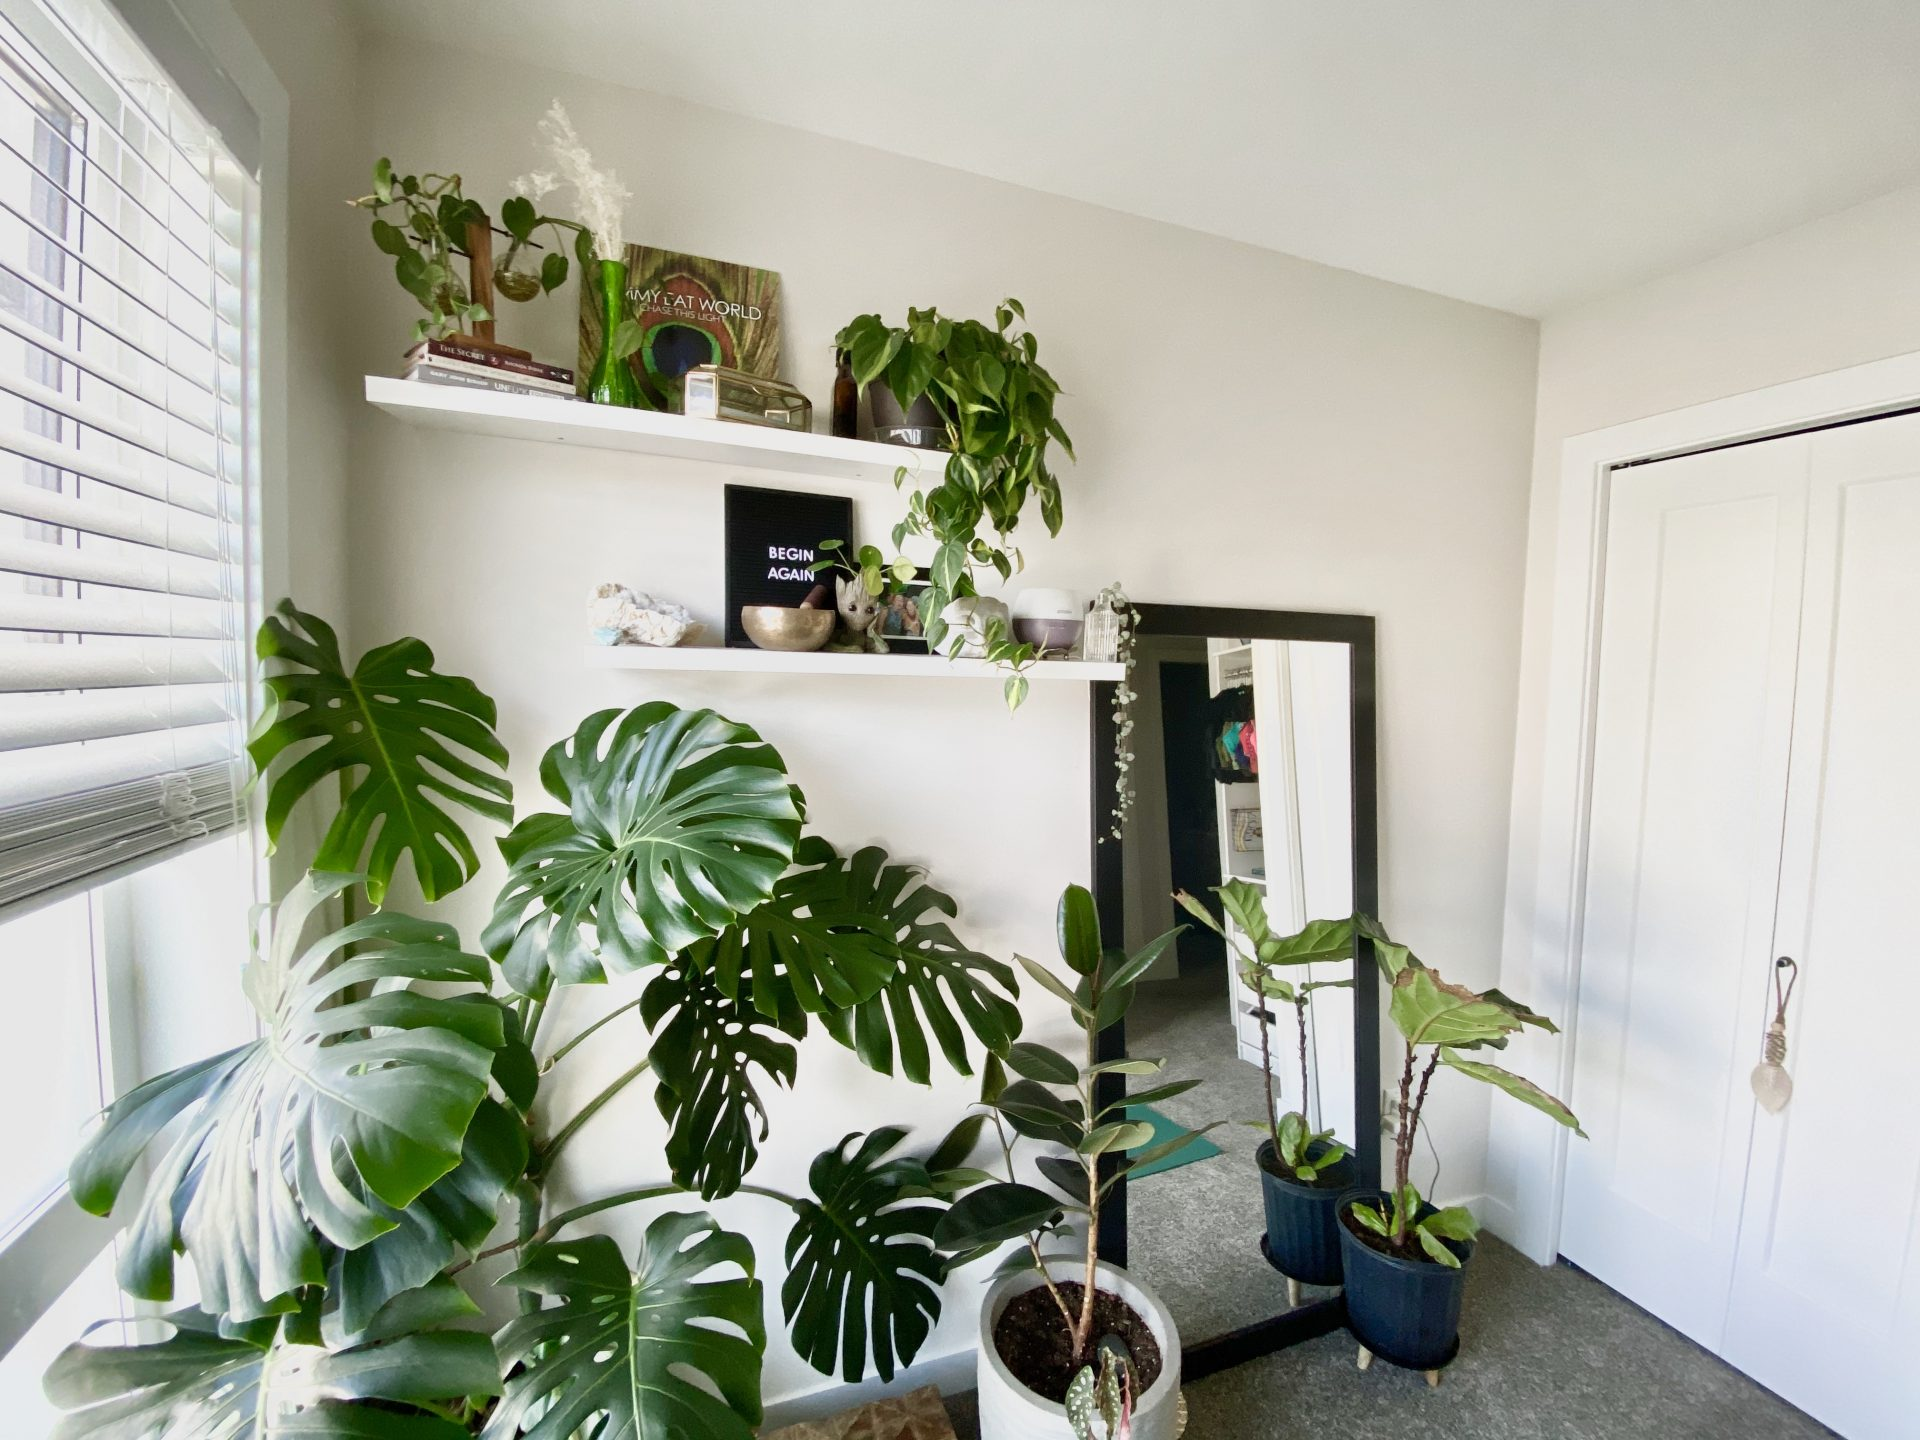 A room with many plants, two white floating shelves on the wall holding nic nacks